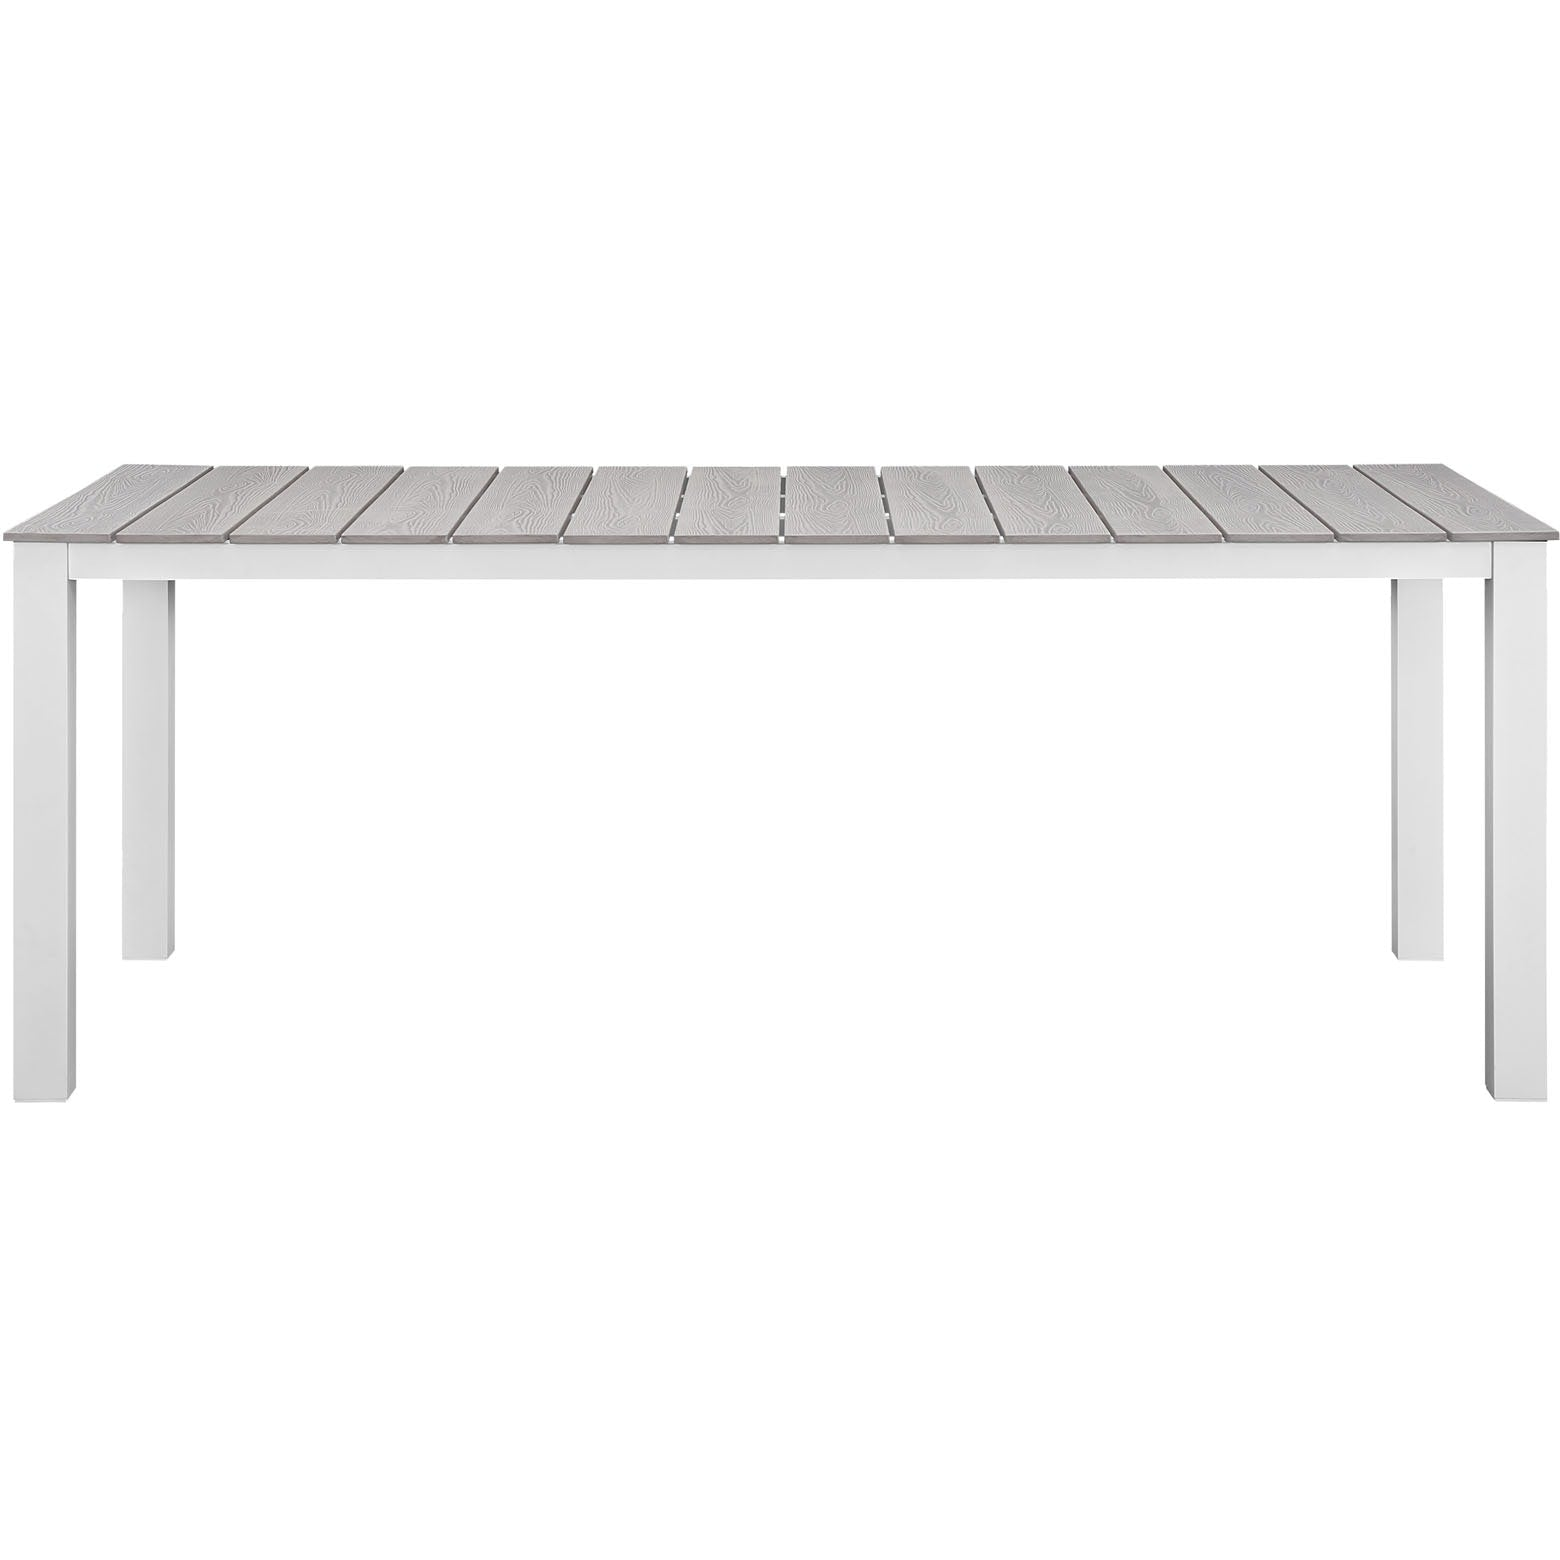 "Maine 80"" Outdoor Patio Dining Table - White Light Gray"